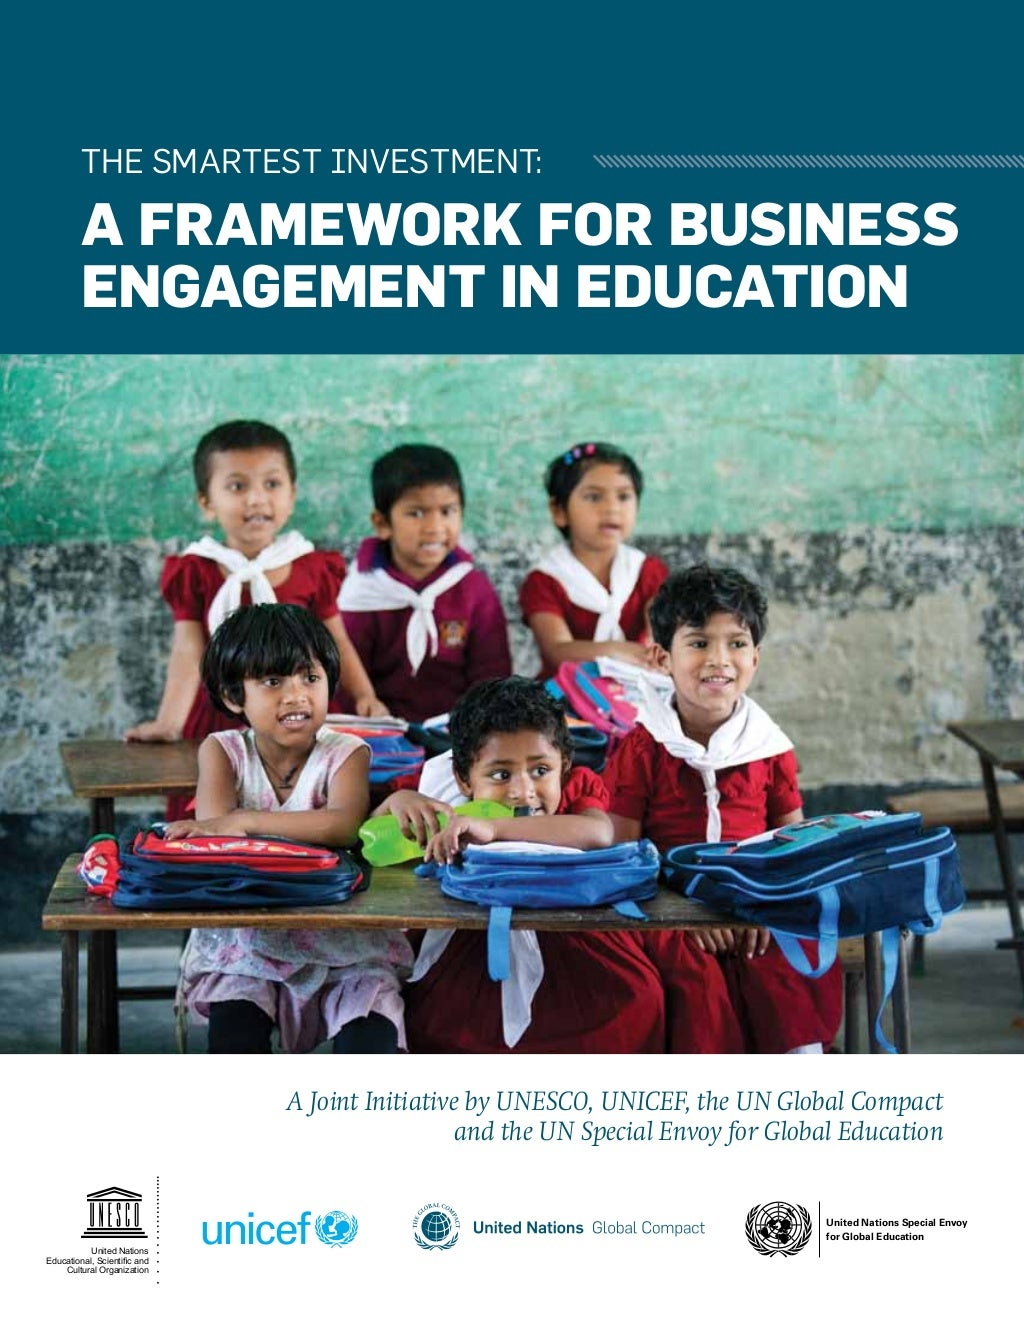 The smartest investment: a framework for business engagement in education